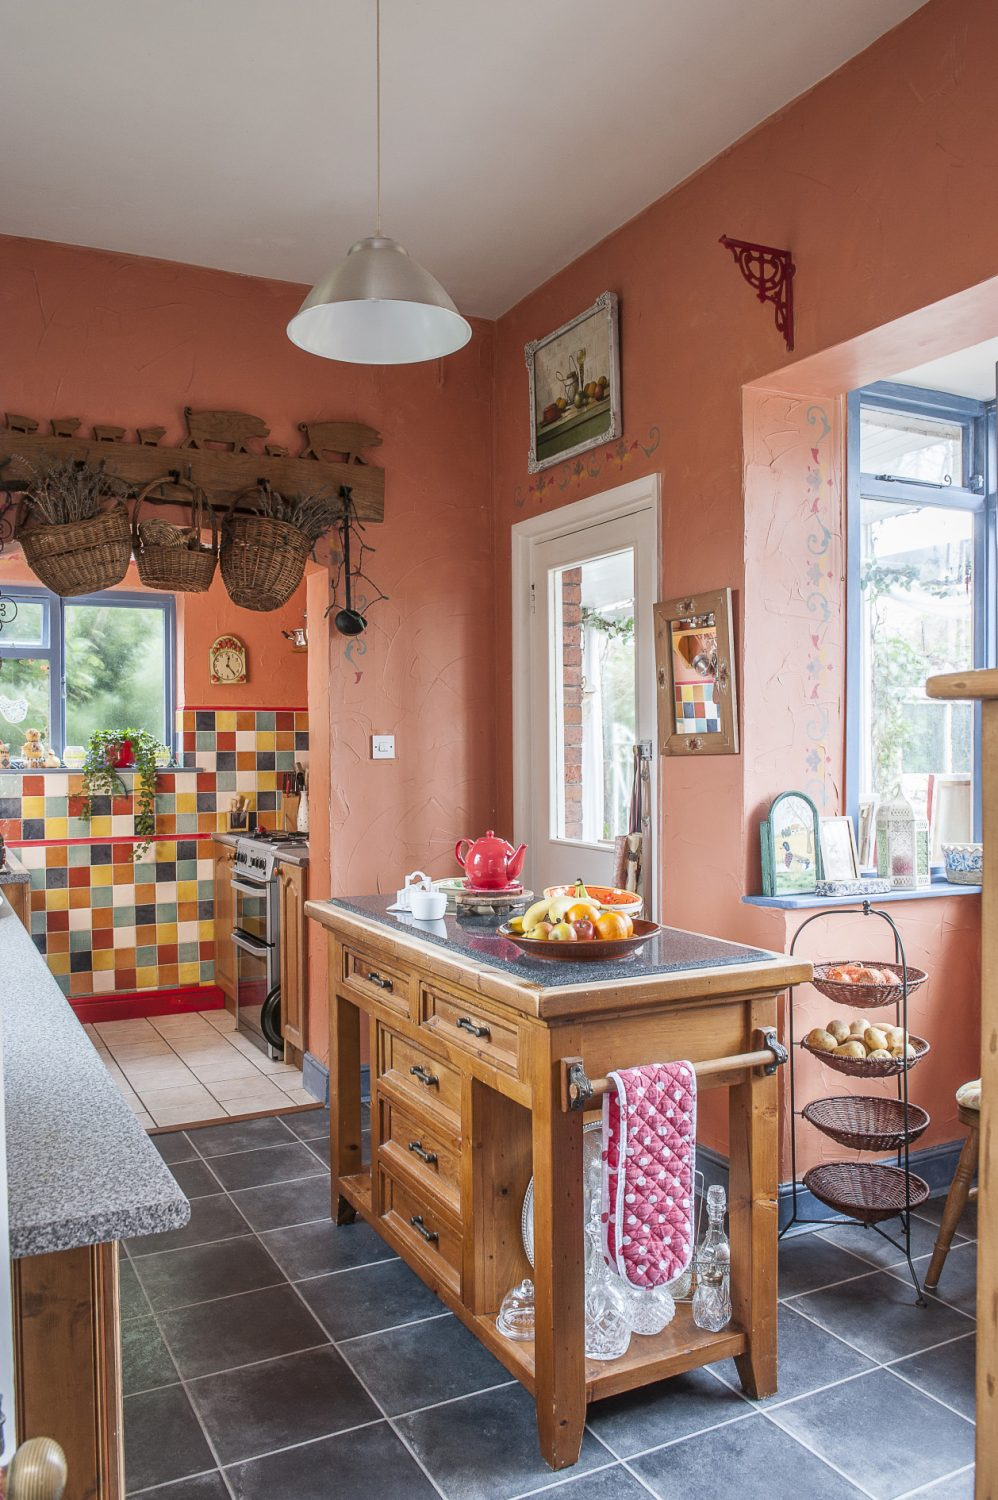 The kitchen is painted and tiled in a Spanish palette of rich terracotta and sunshine yellow